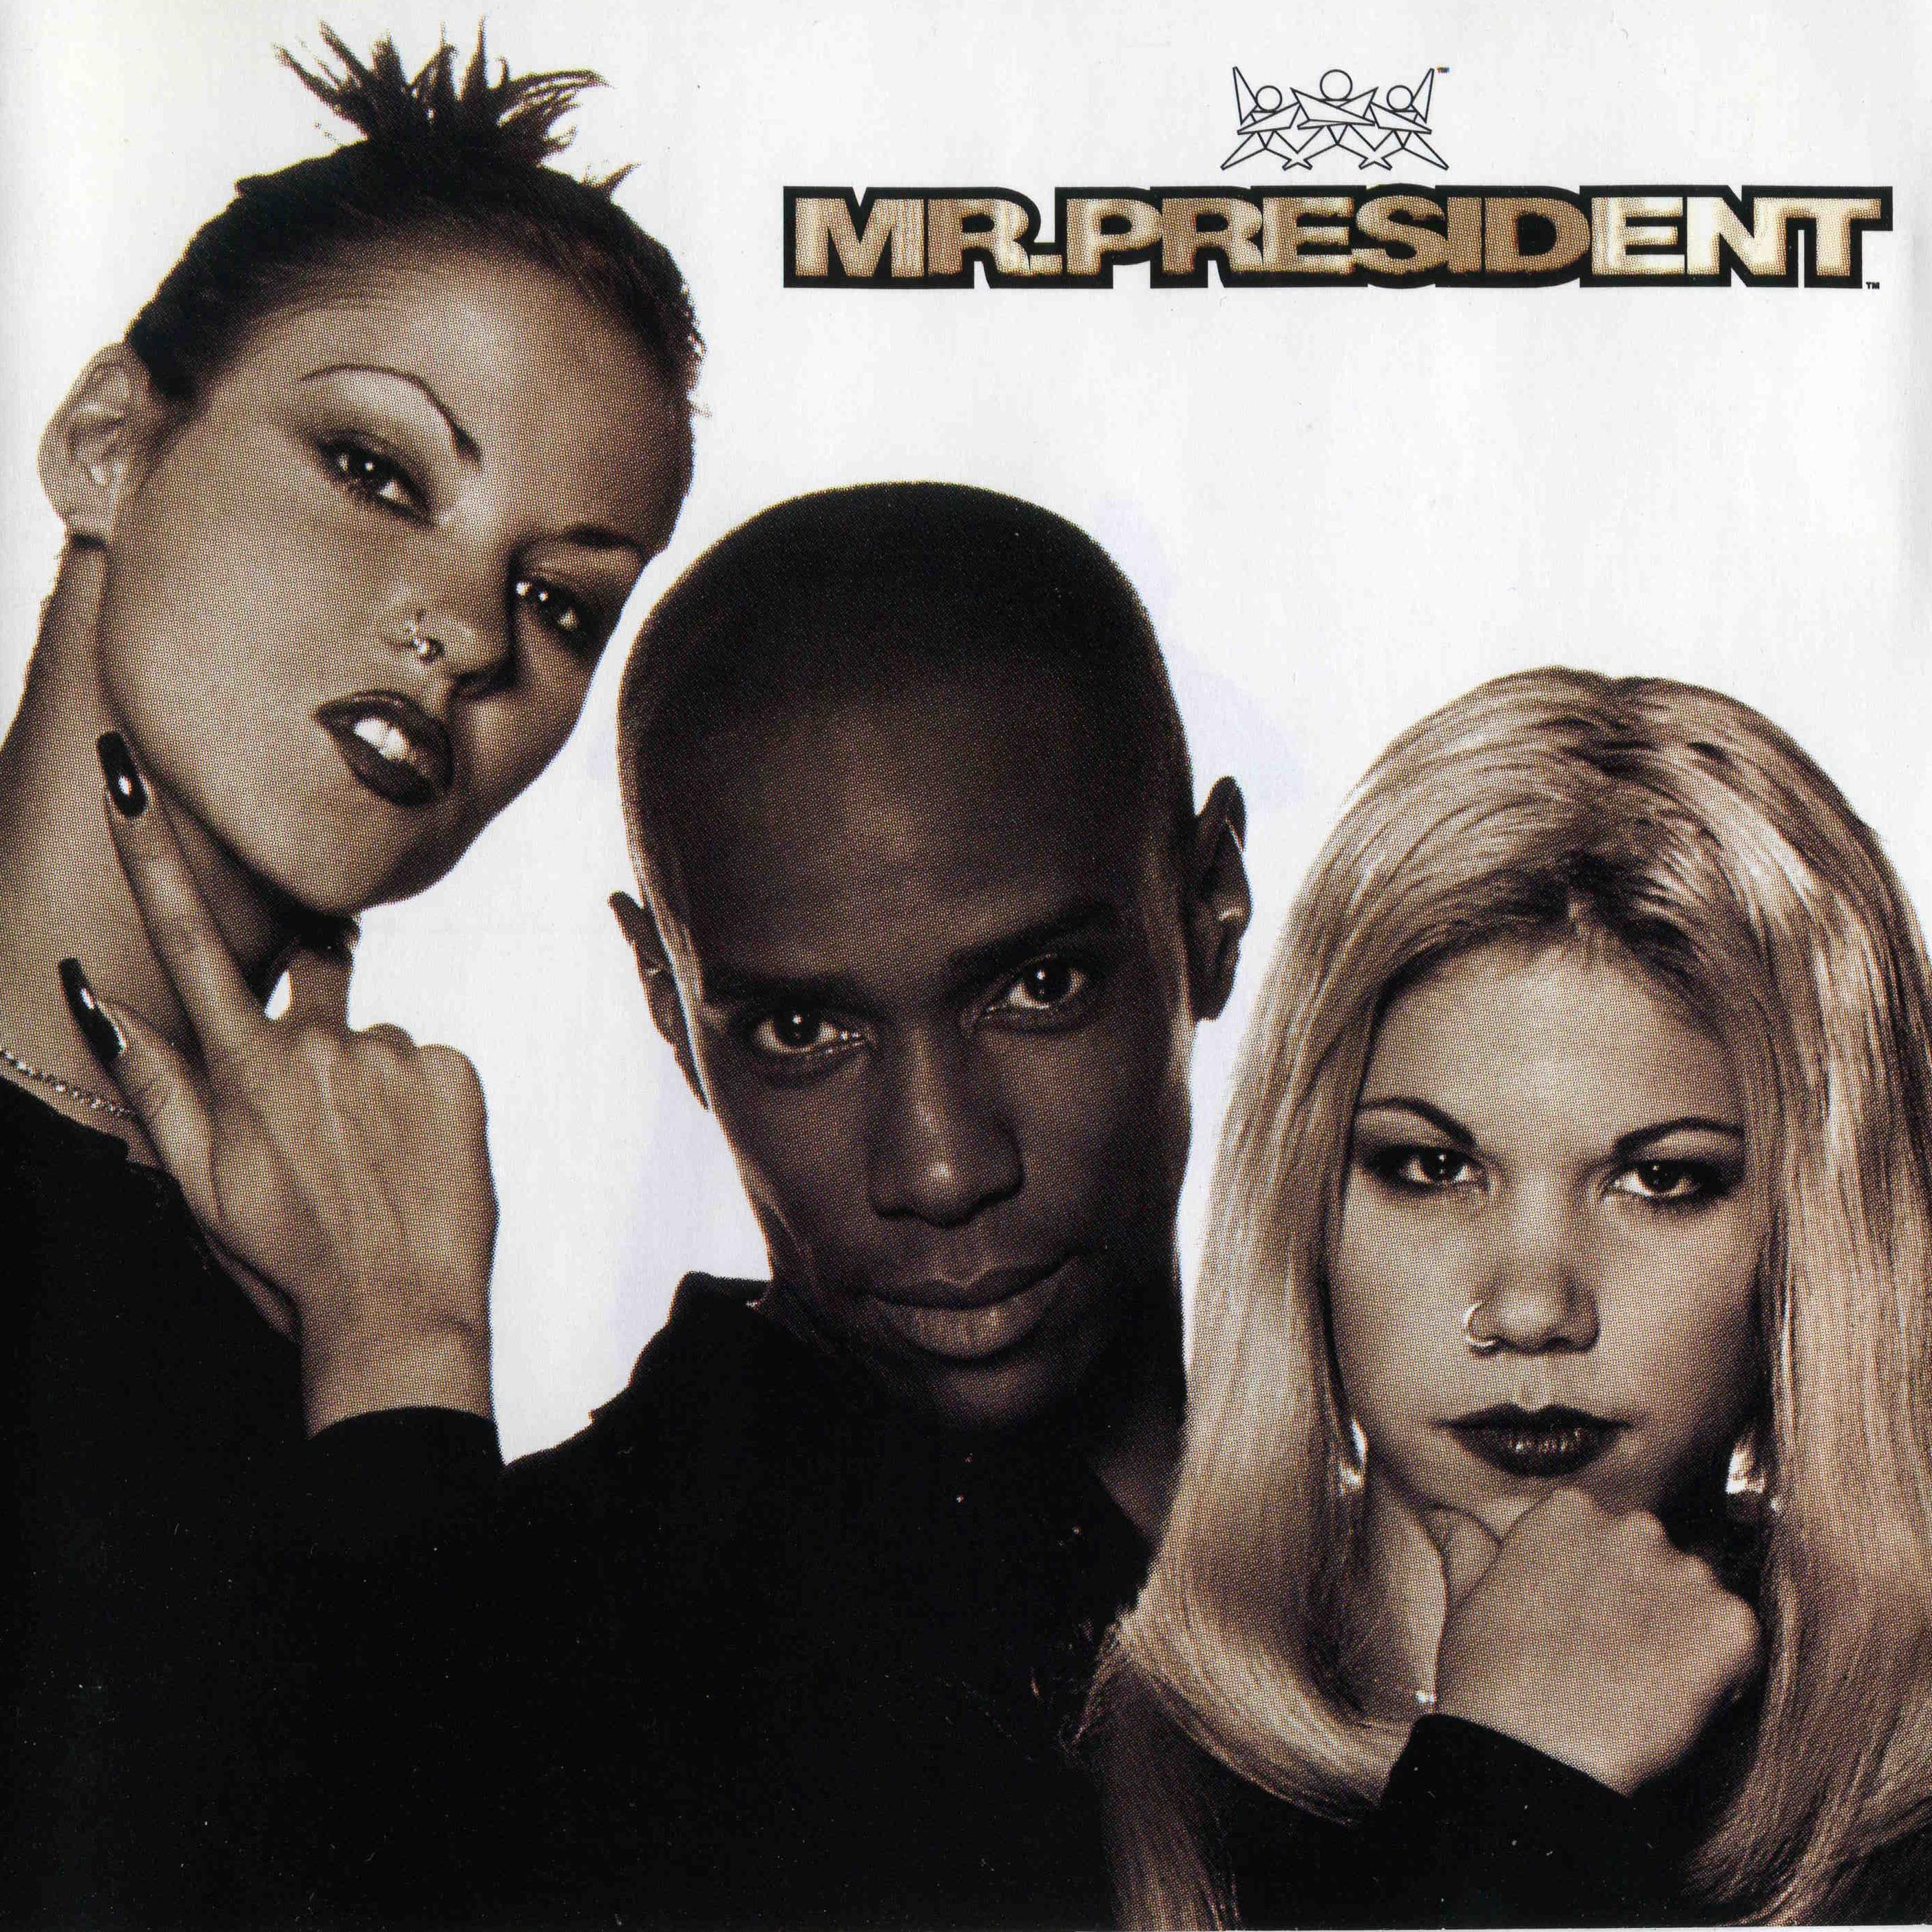 Mr President cover COCO JAMBOO